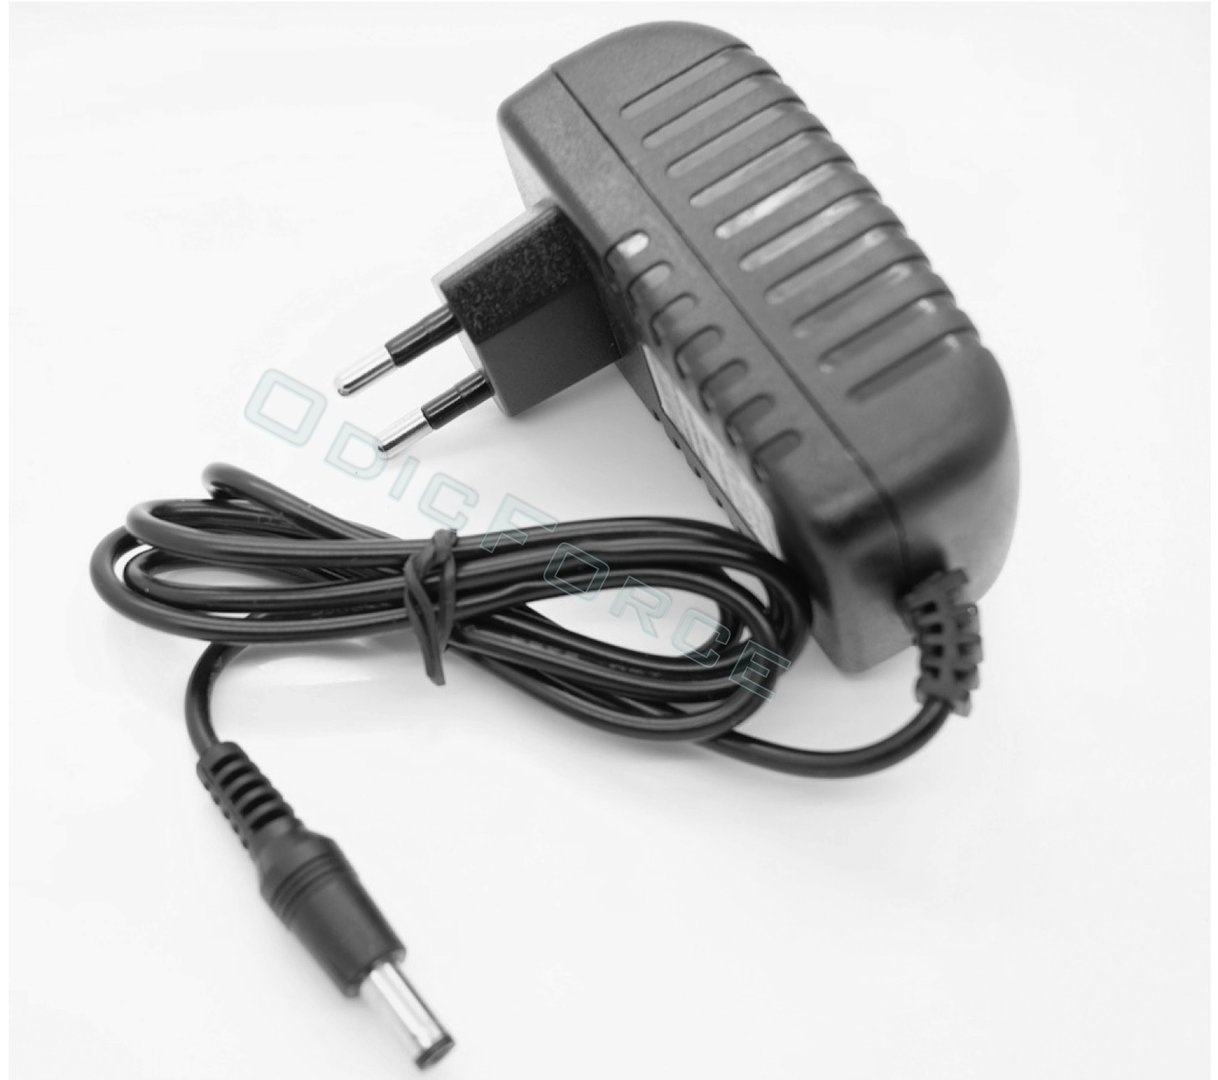 Euro Plug DC 12V 2A Power Supply Adapter 100-240V Input,  5.5mm x 2.1mm Connector